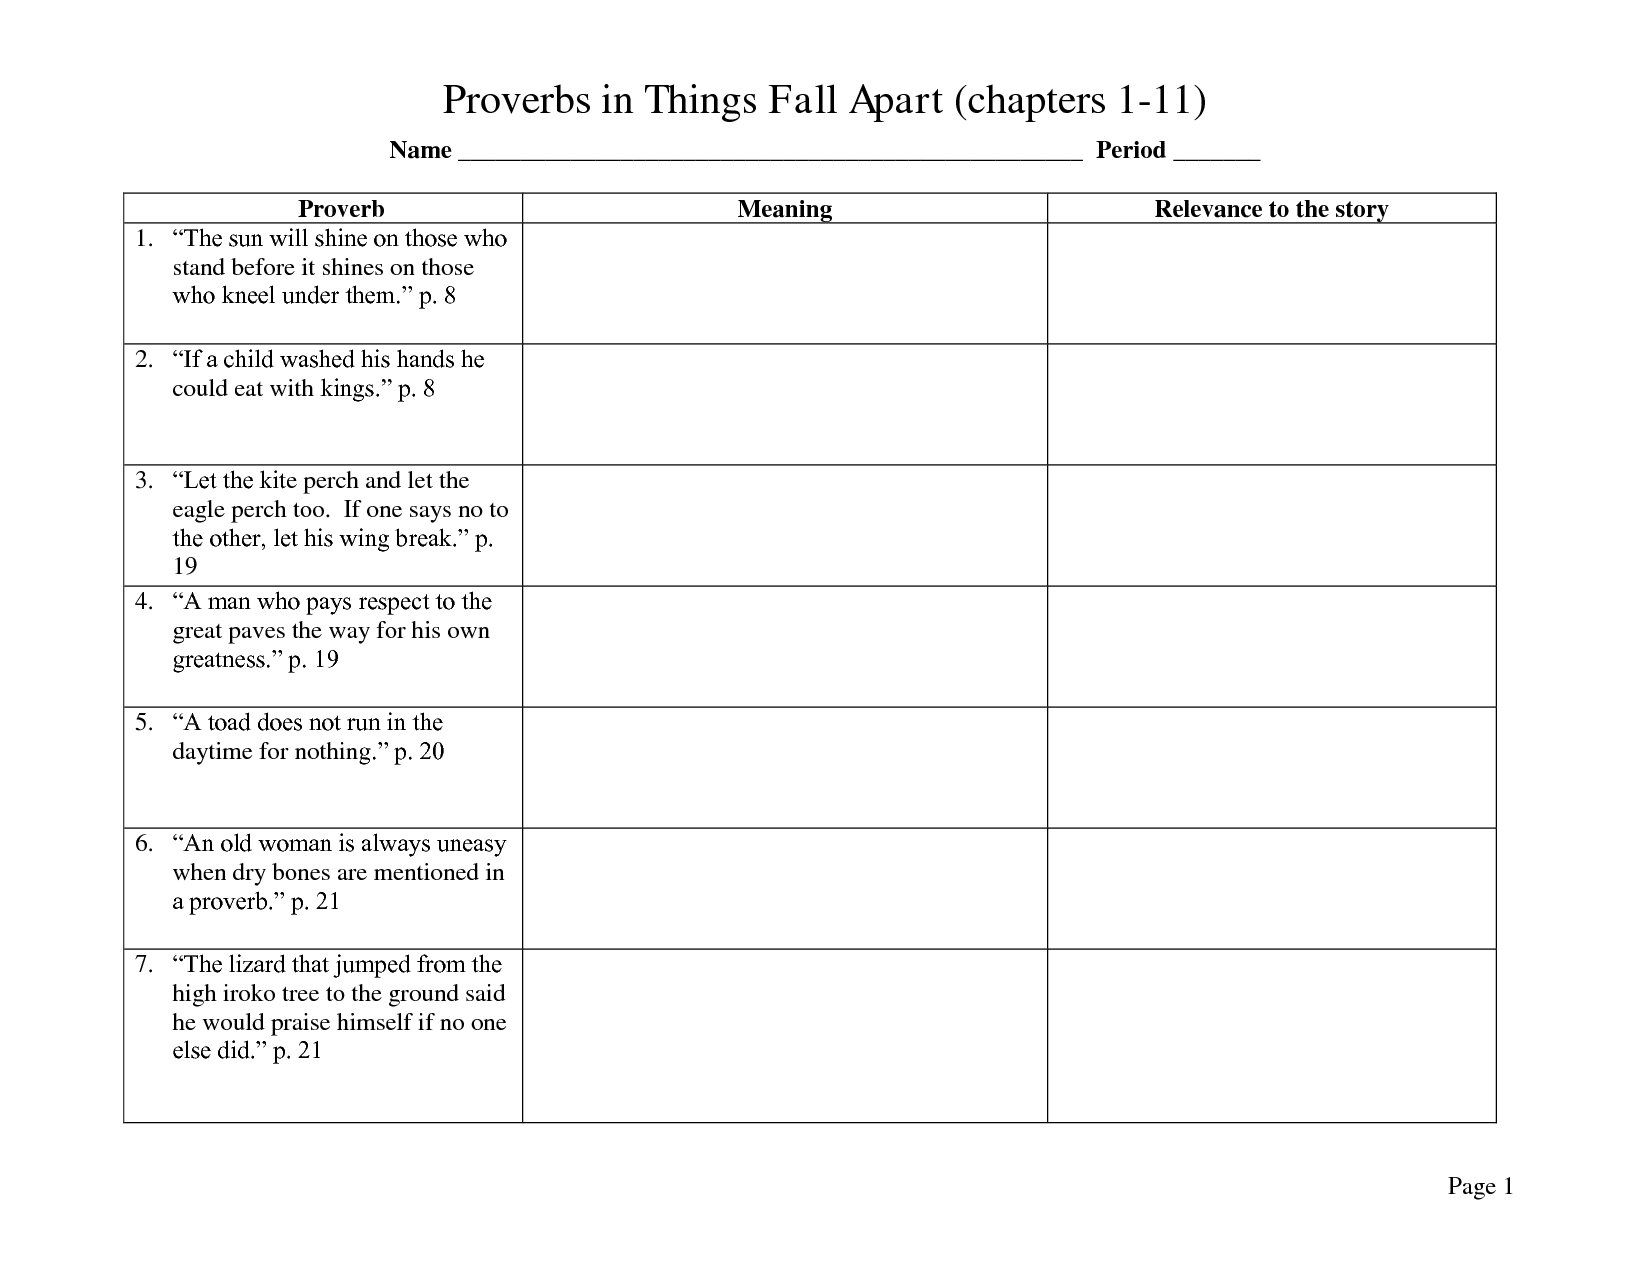 things fall apart proverbs Class assignment for freshman english class - exploring and interpreting proverbs found in this classic novel by chinua achebe.